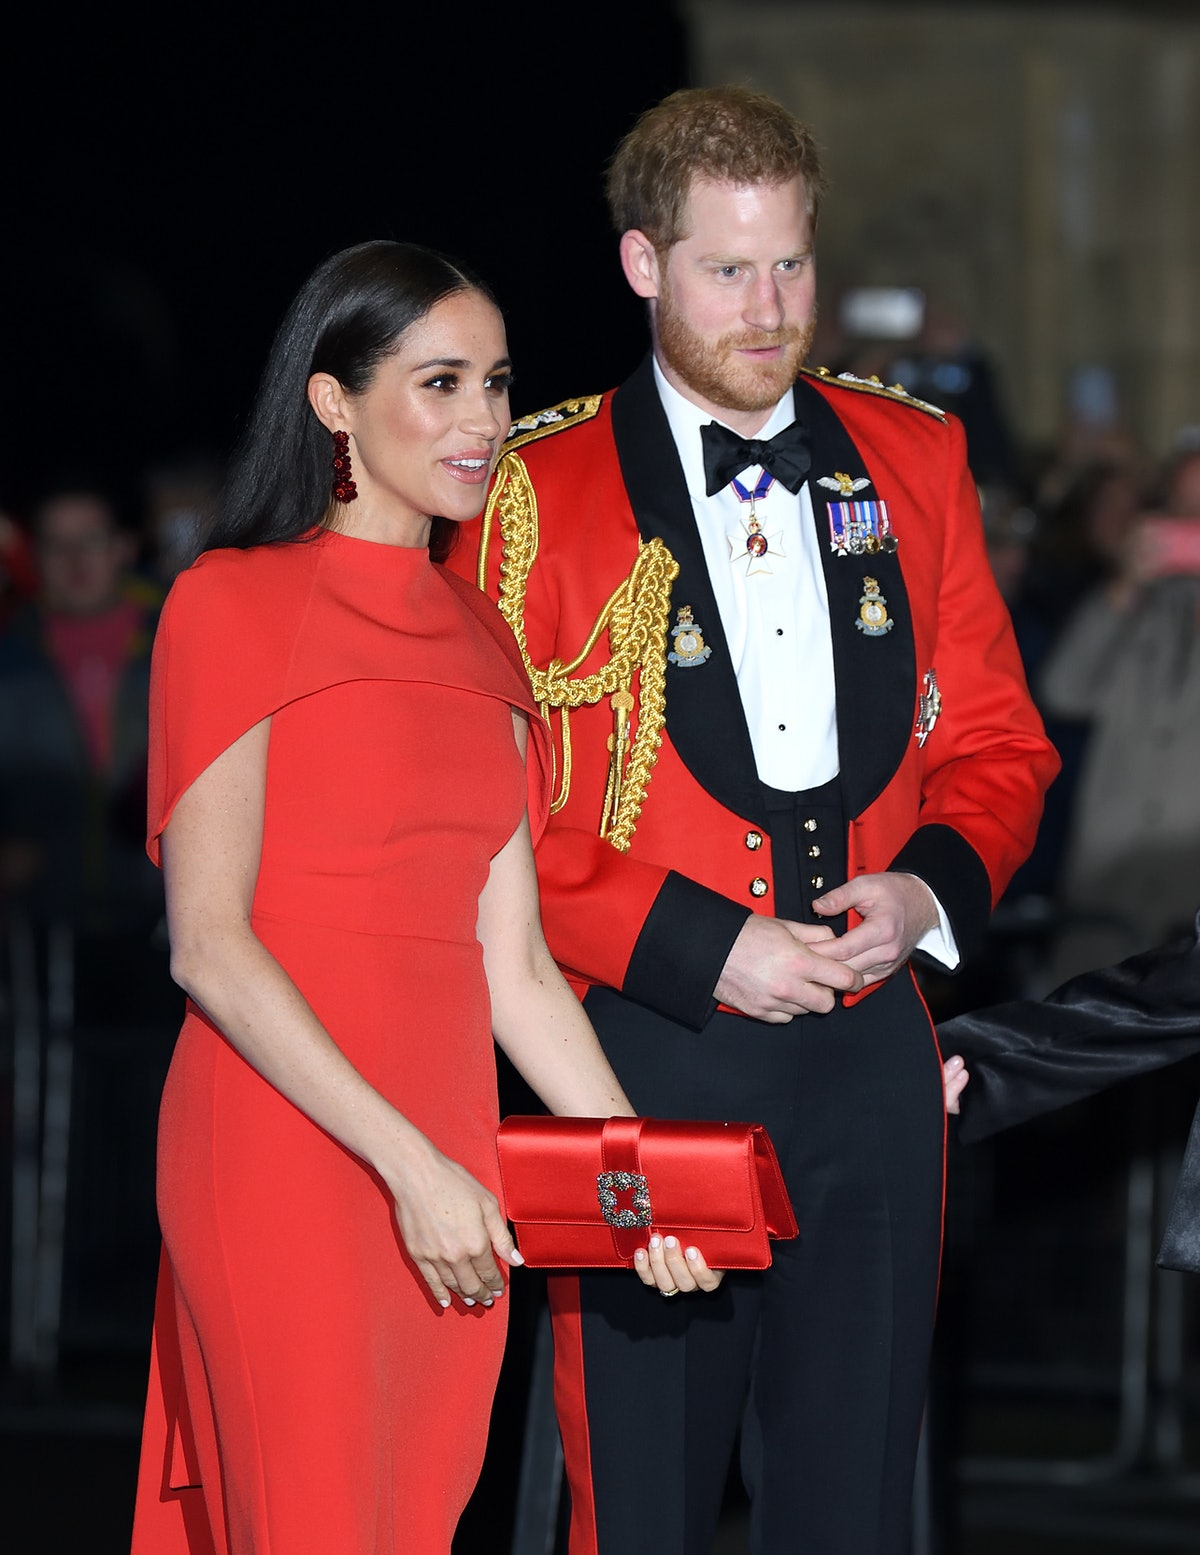 Prince Harry and Meghan Markle at the function.